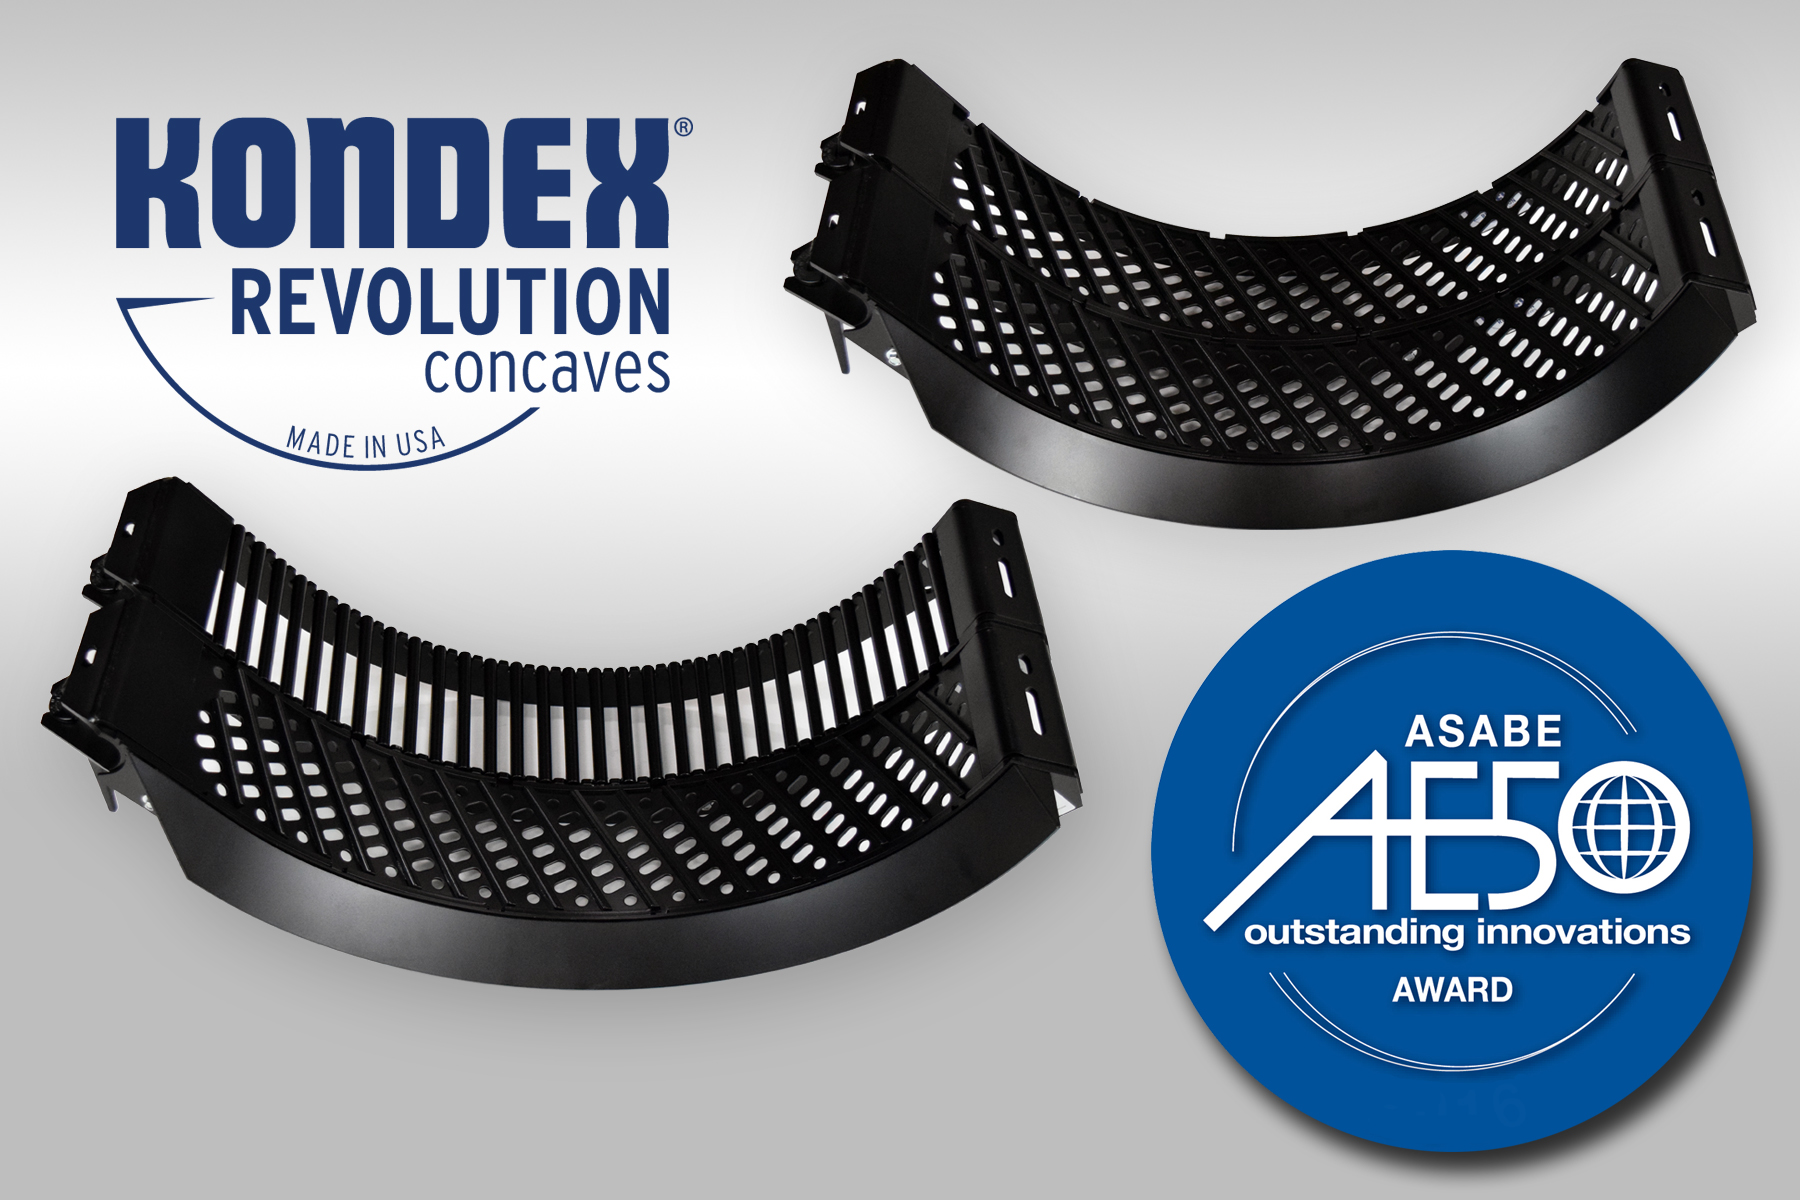 Kondex Revolution concaves and AE50 Award logo